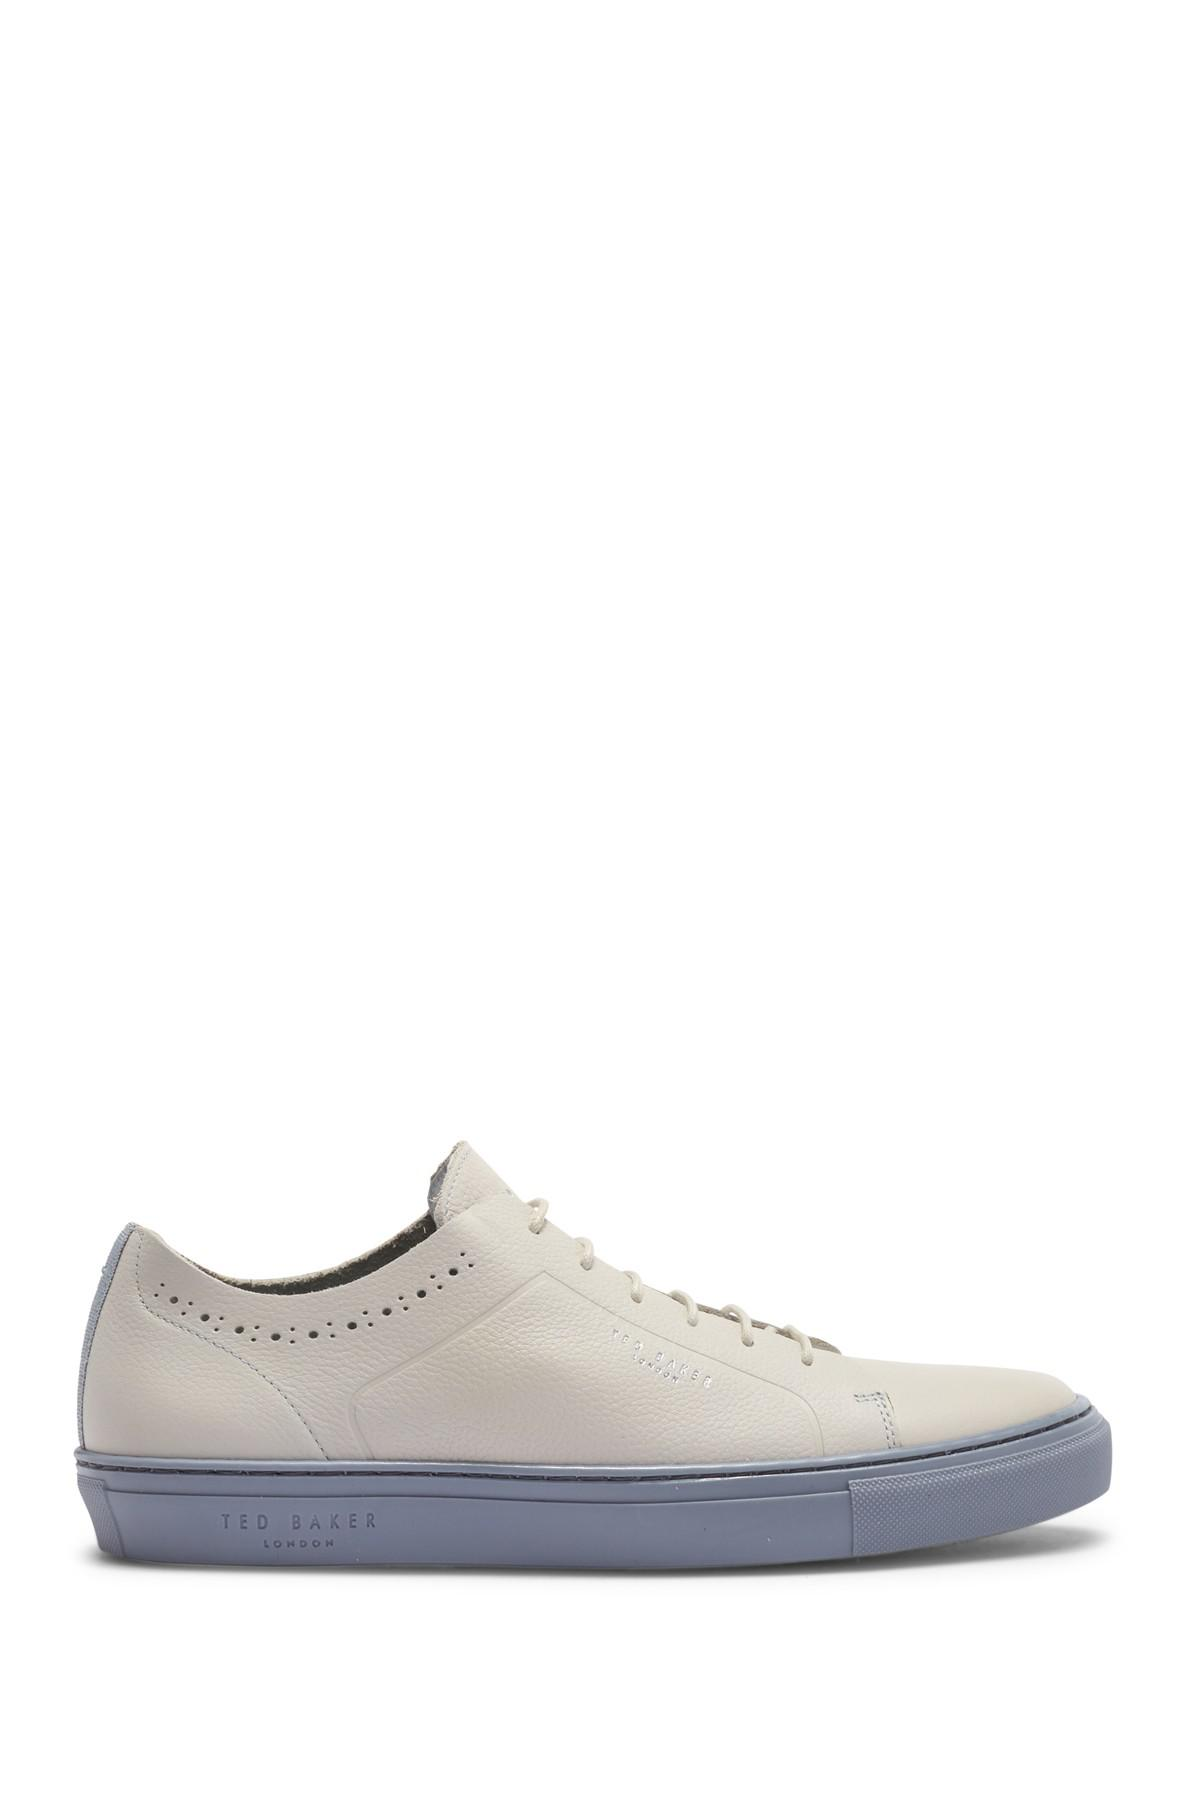 68752423 ... Ted Baker - White Uurll Leather Sneaker for Men - Lyst · Visit  Nordstrom Rack. Tap to visit site